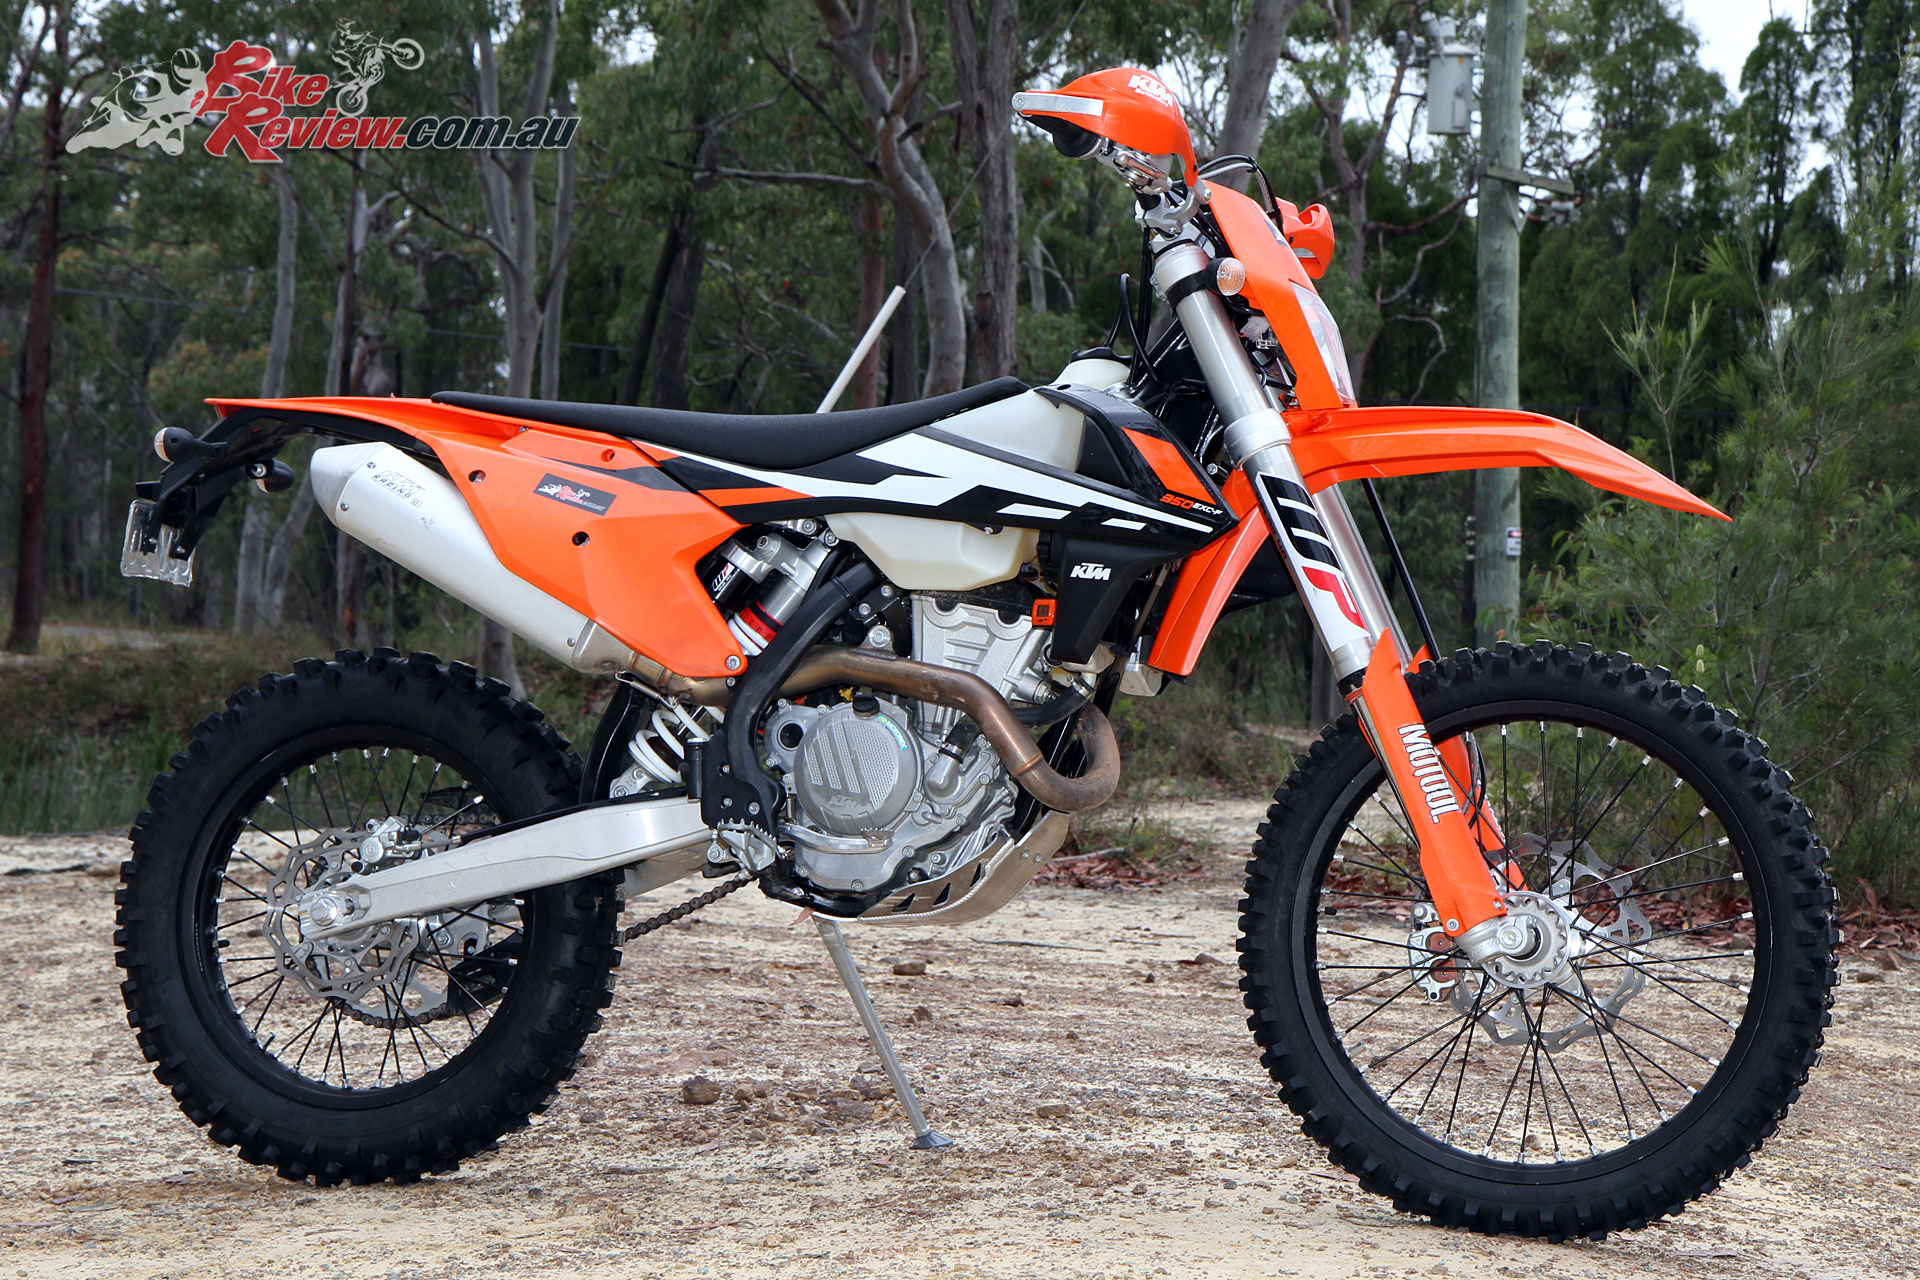 The 2017 KTM 350 EXC-F has proved to be an awesome middleweight bike over the past four months.